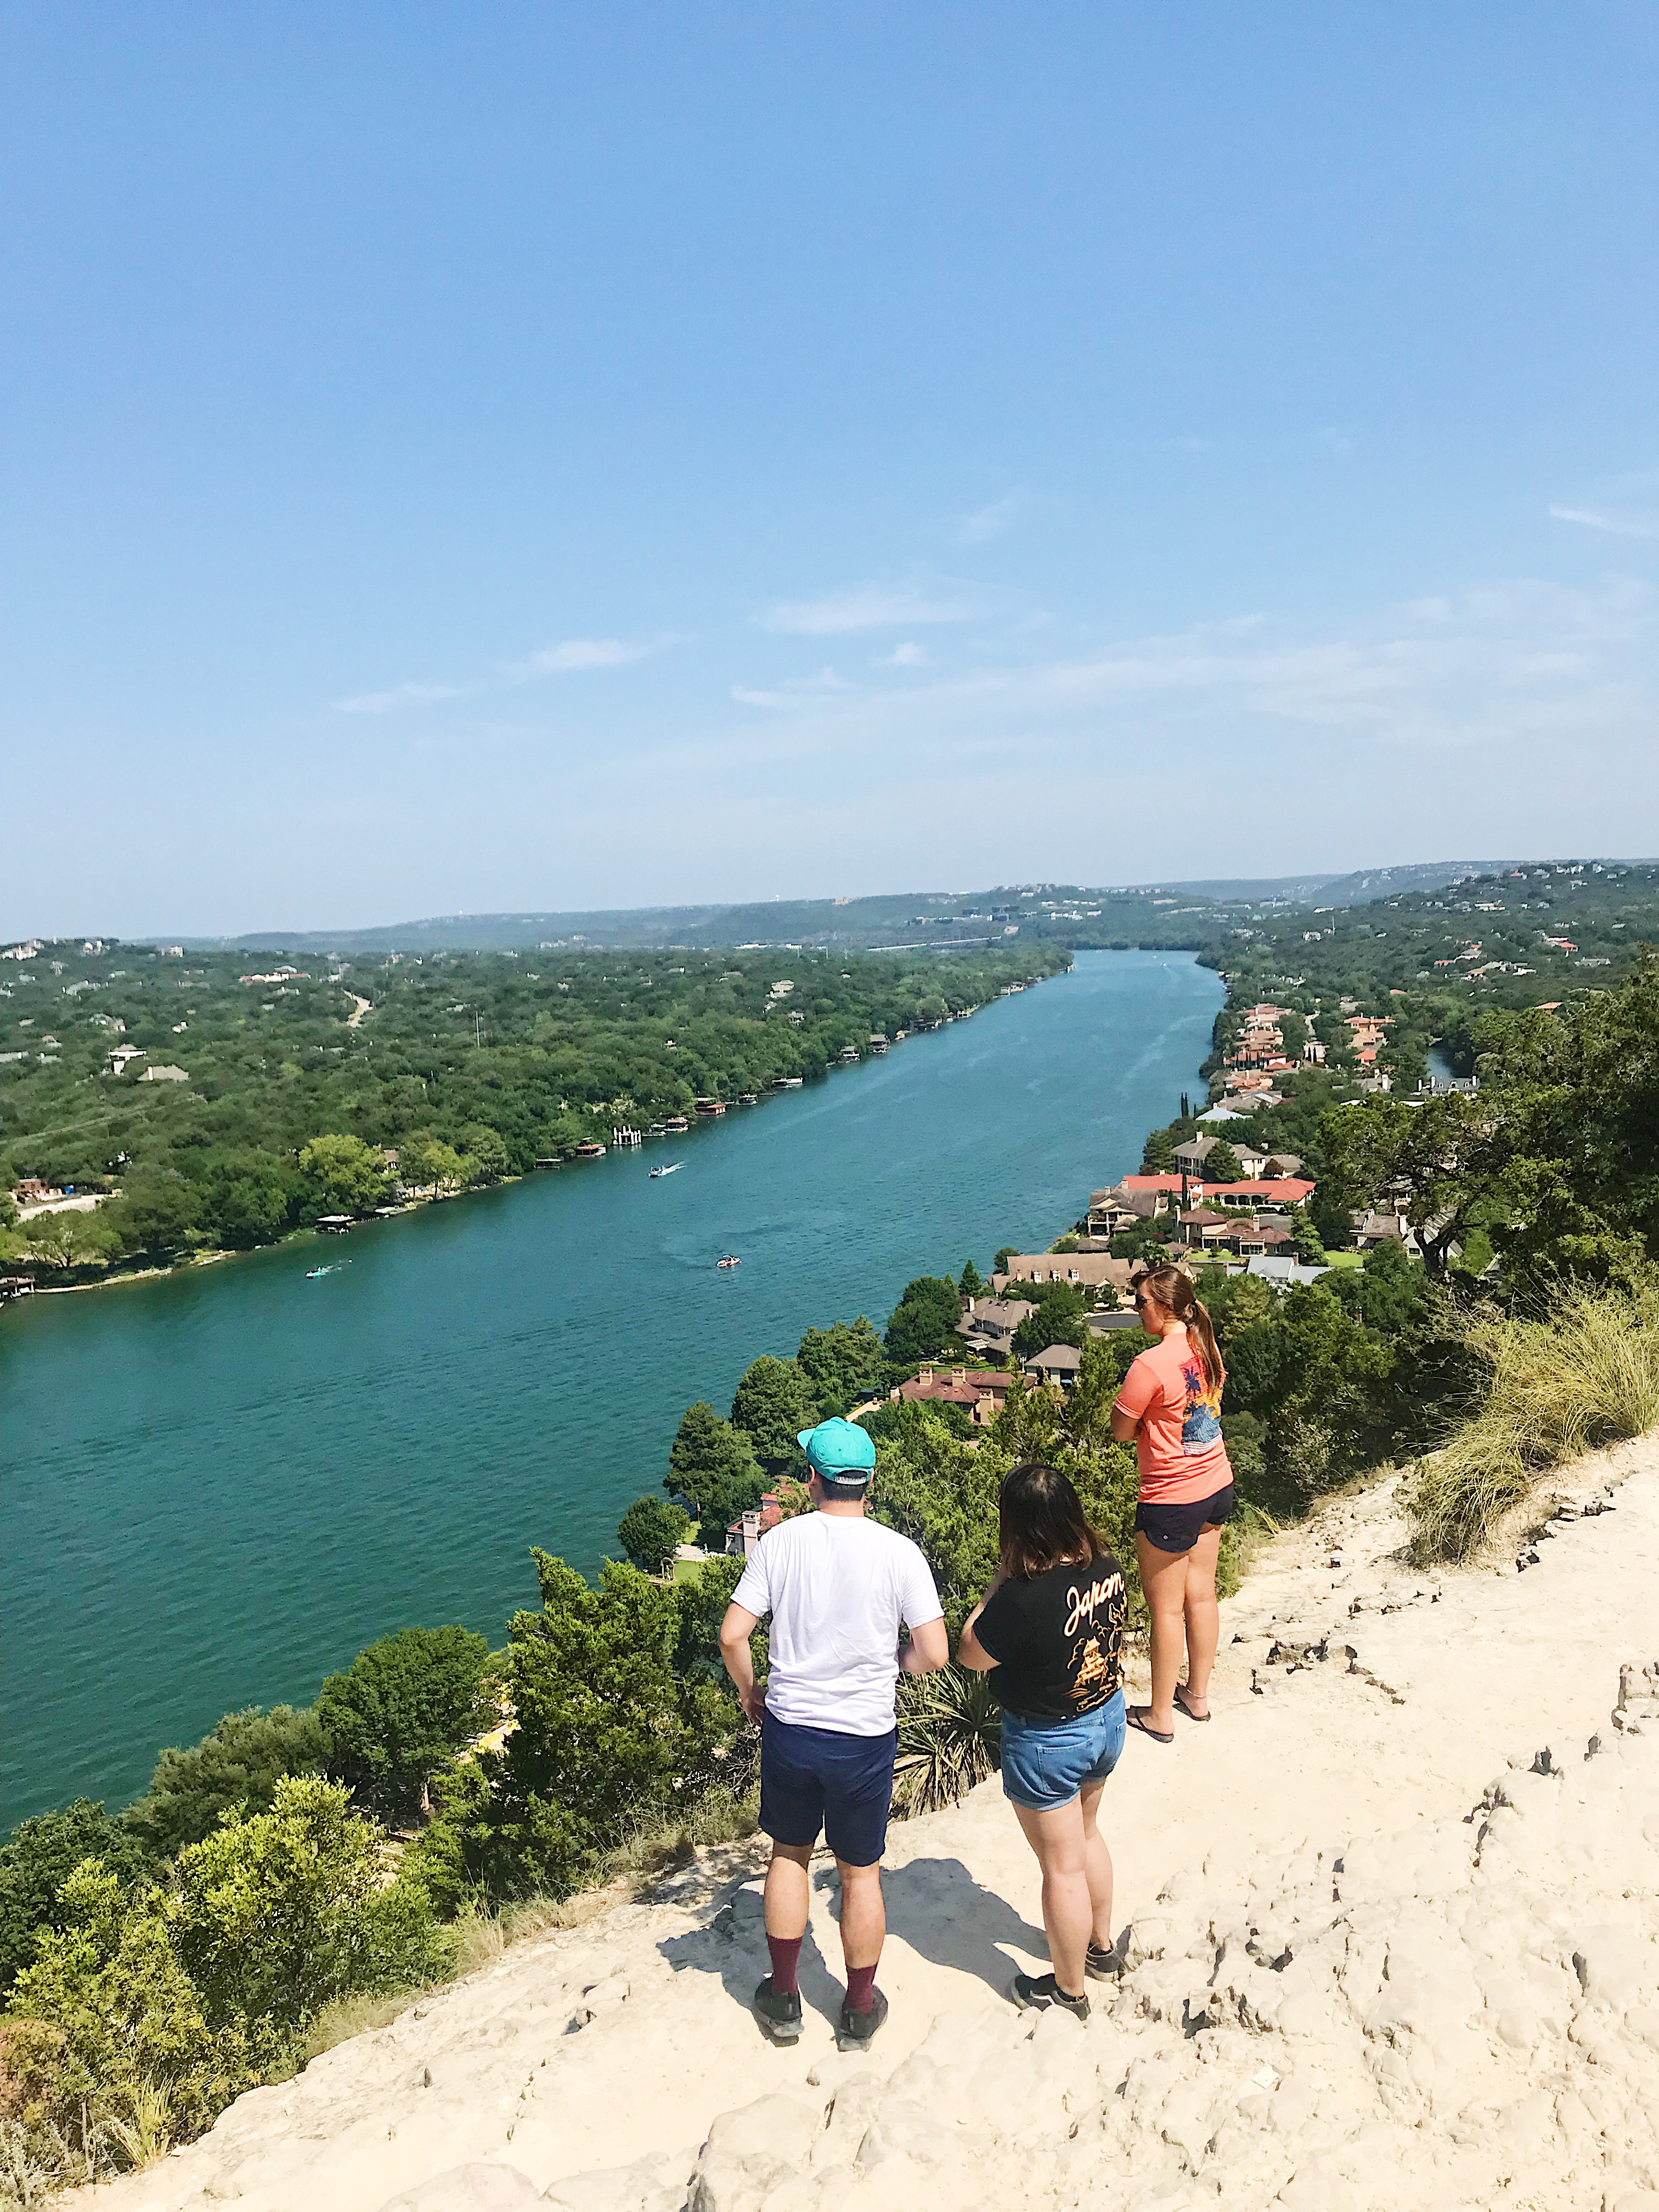 The Best Things To Do In Dallas You'll Want to Do featured by popular San Diego travel blogger, The Brunette & The Beach: Mt Bonnell